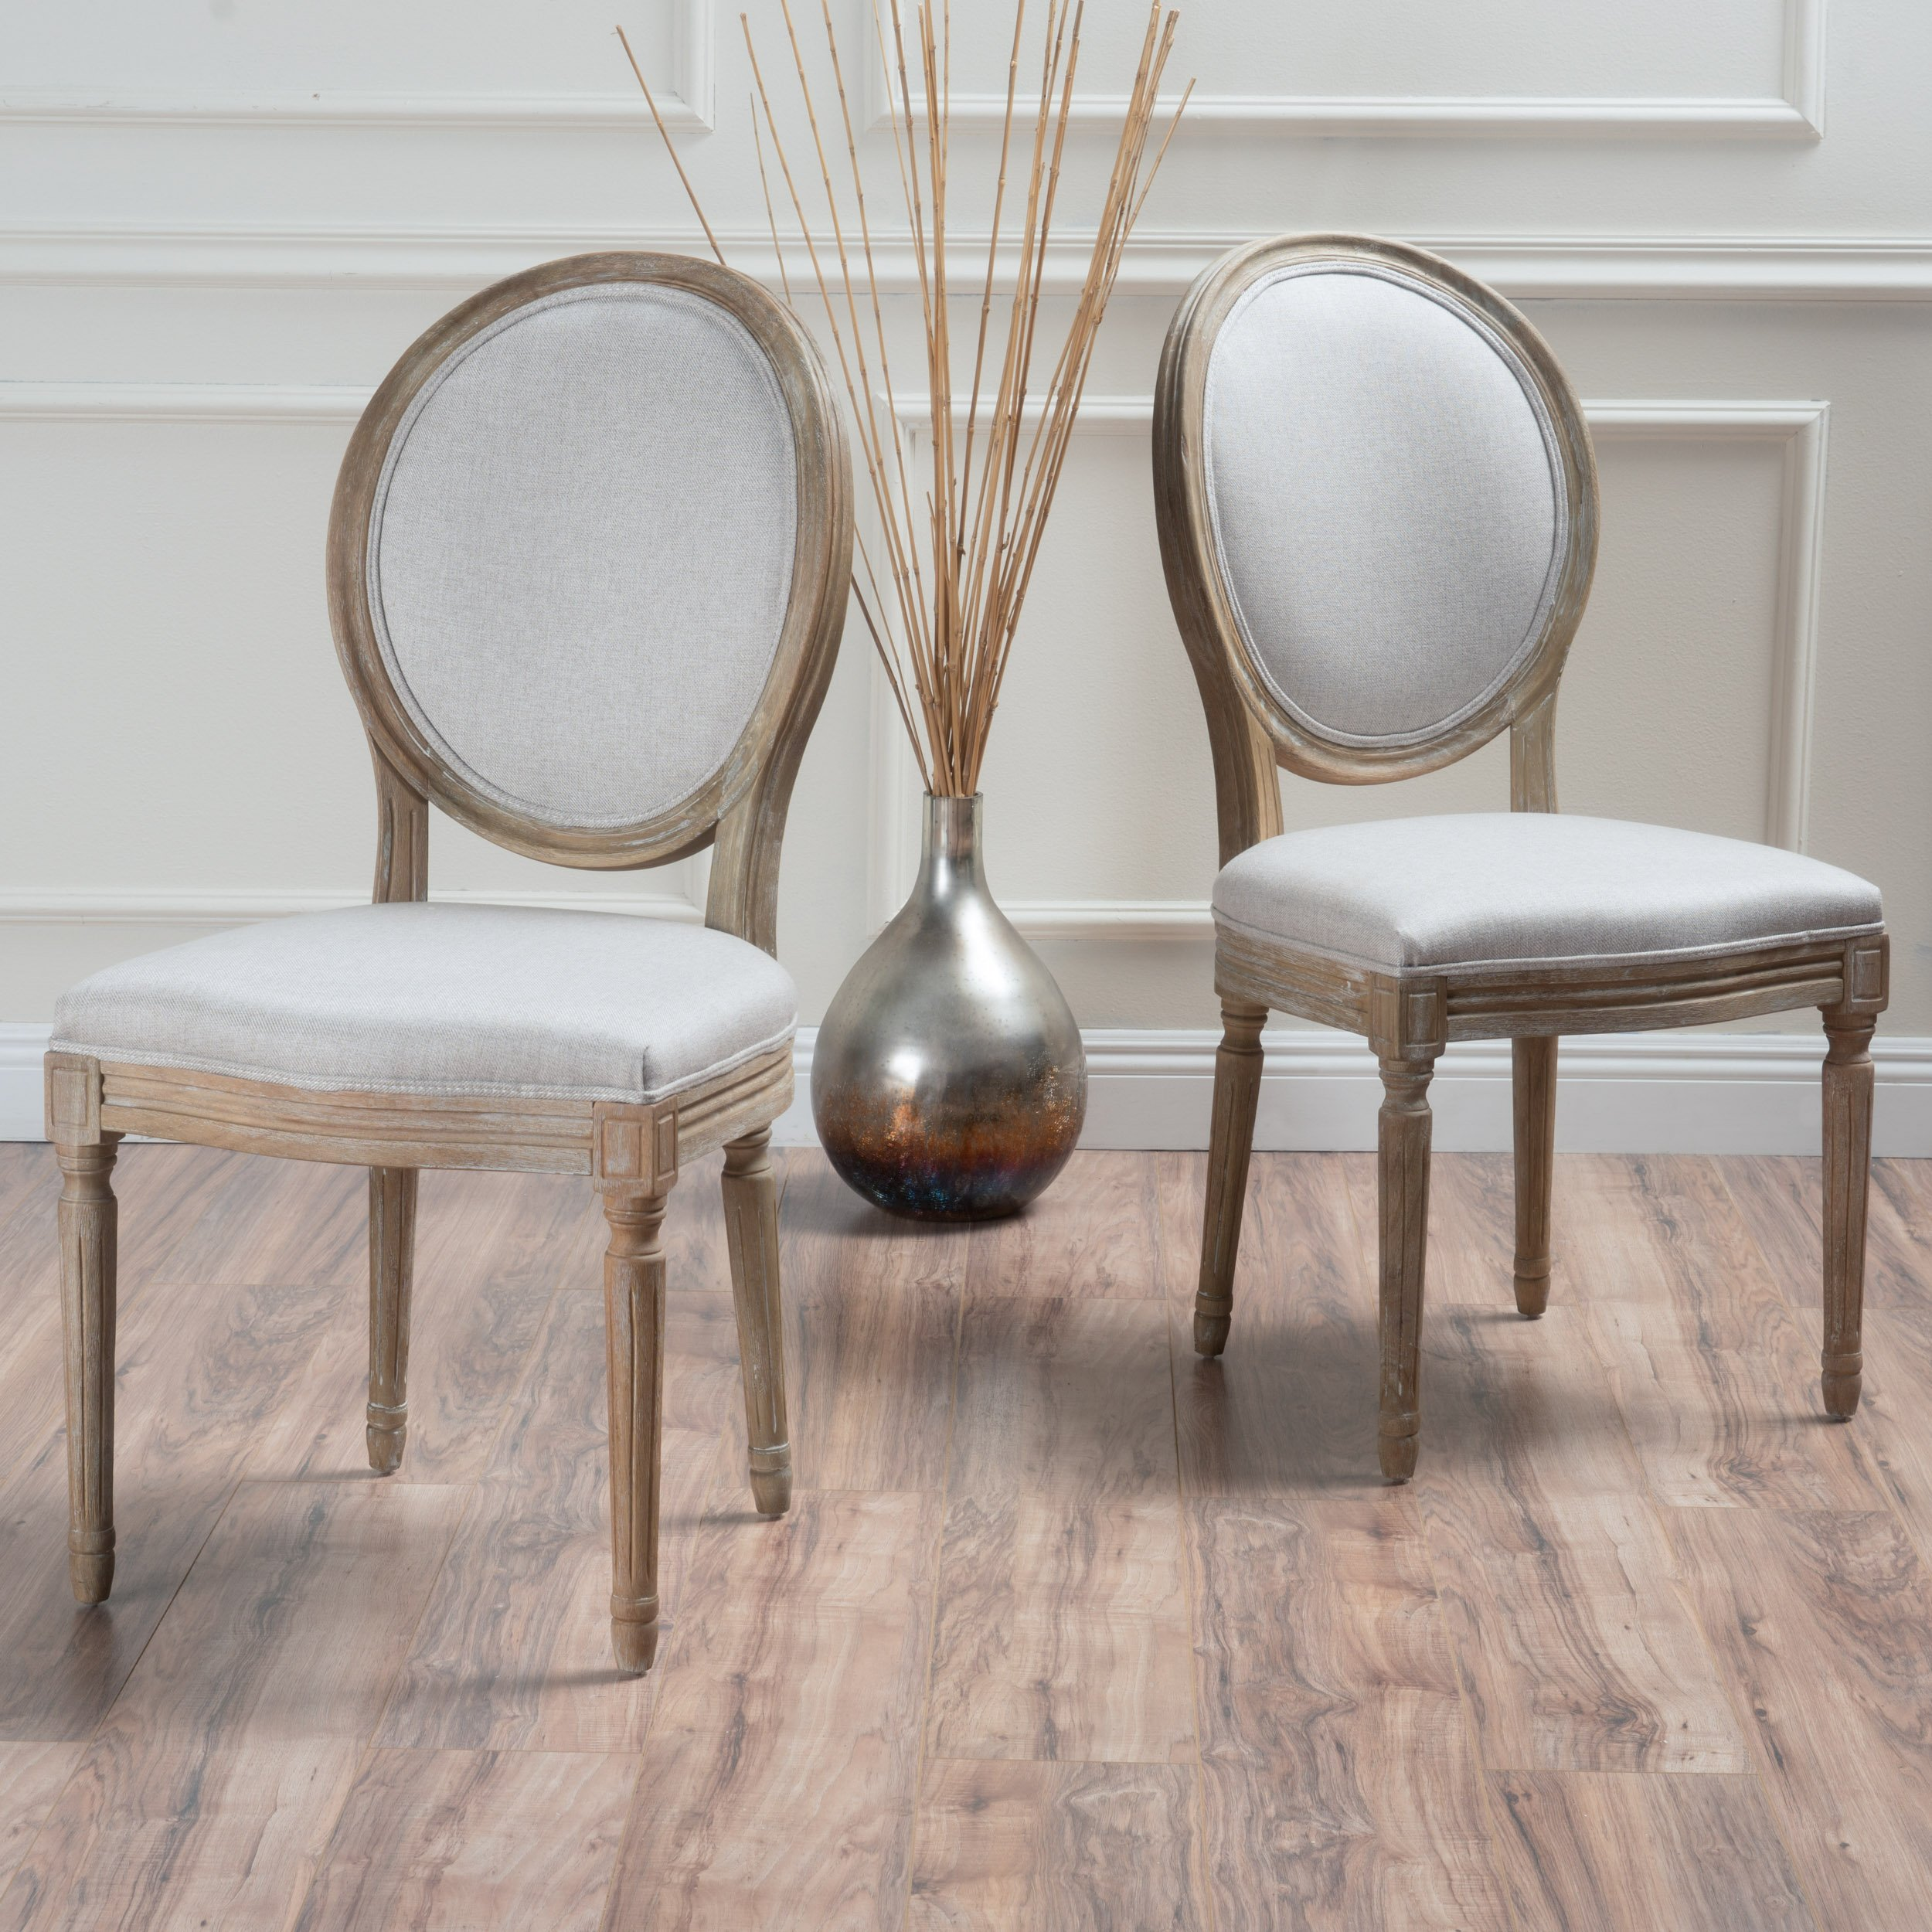 Christopher Knight Home 300258 Phinnaeus Beige Fabric Dining Chair (Set of 2),